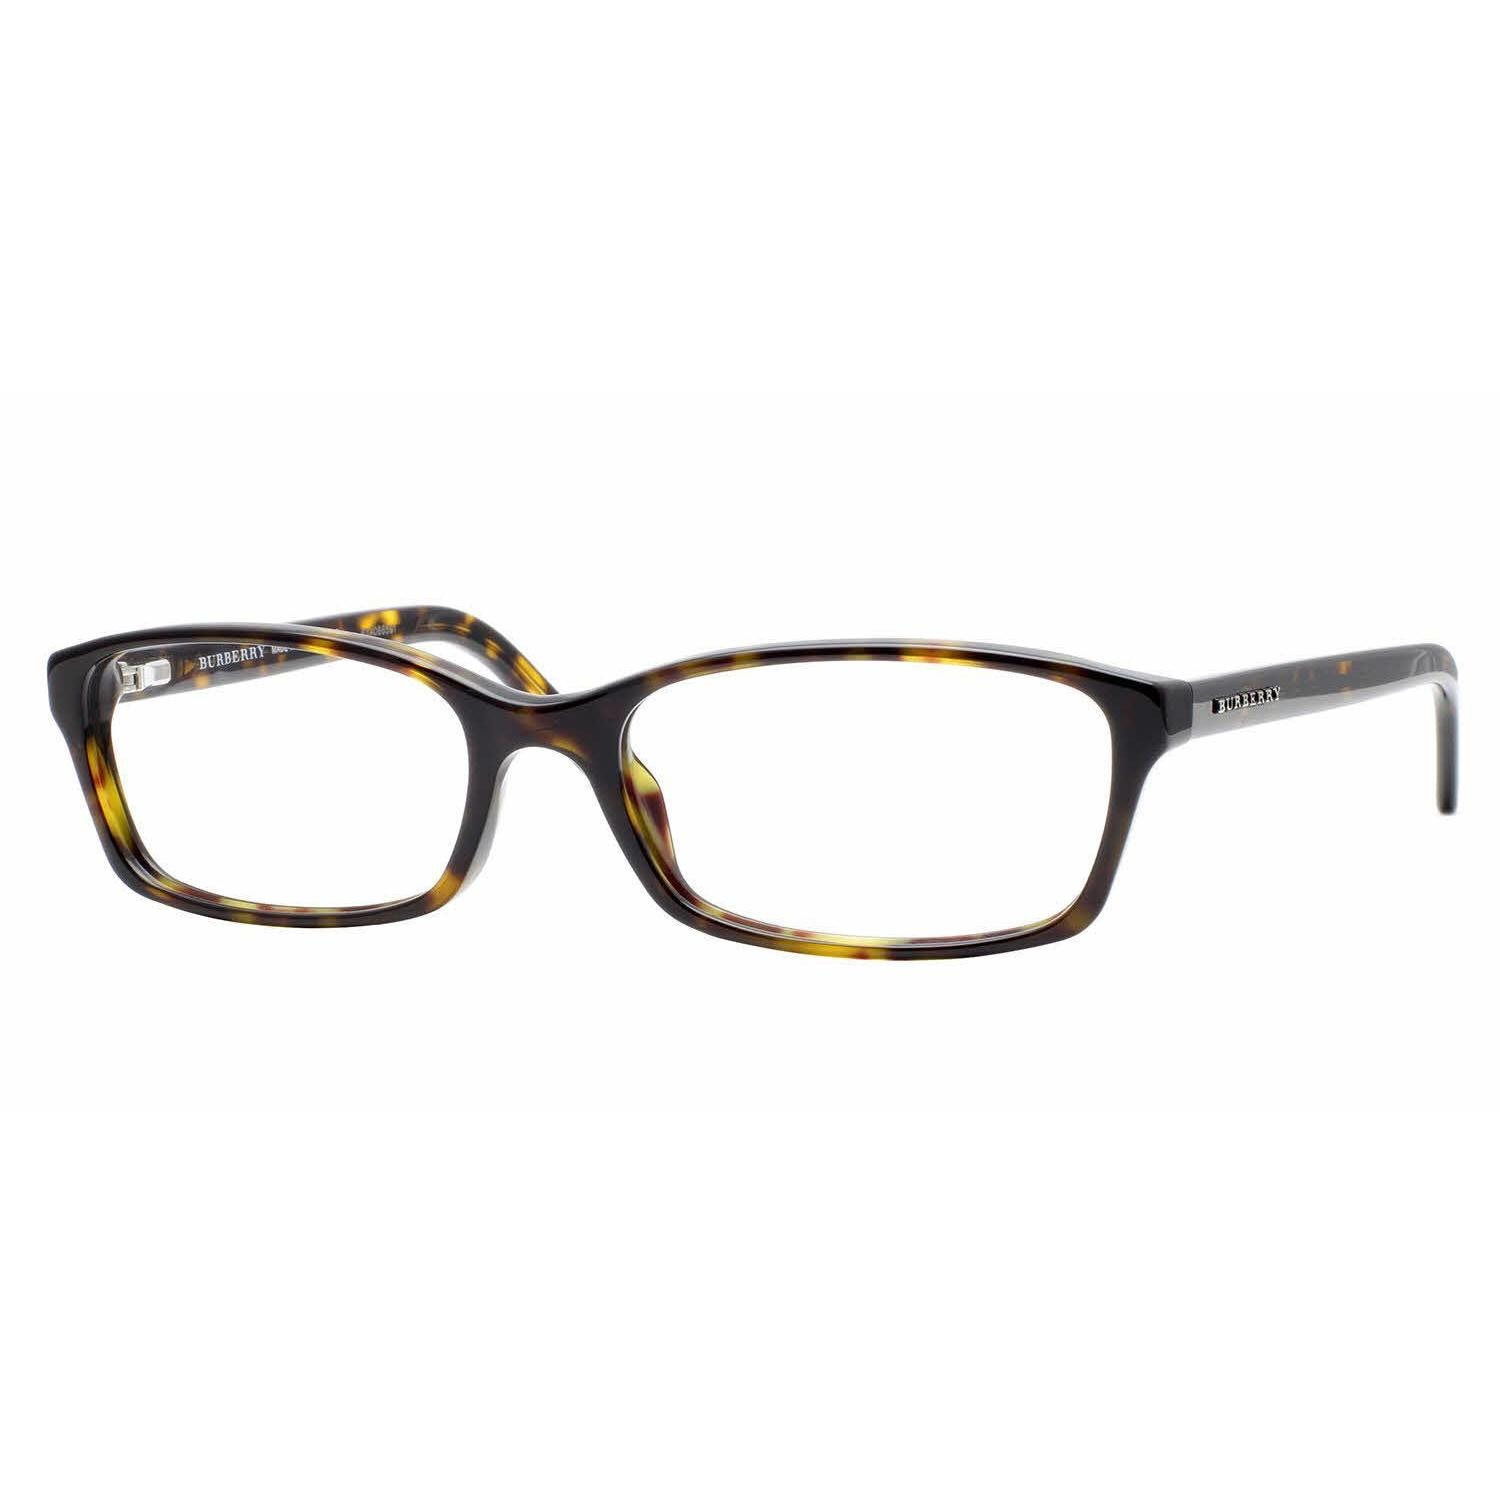 77edd1a68781 Burberry Eyeglasses